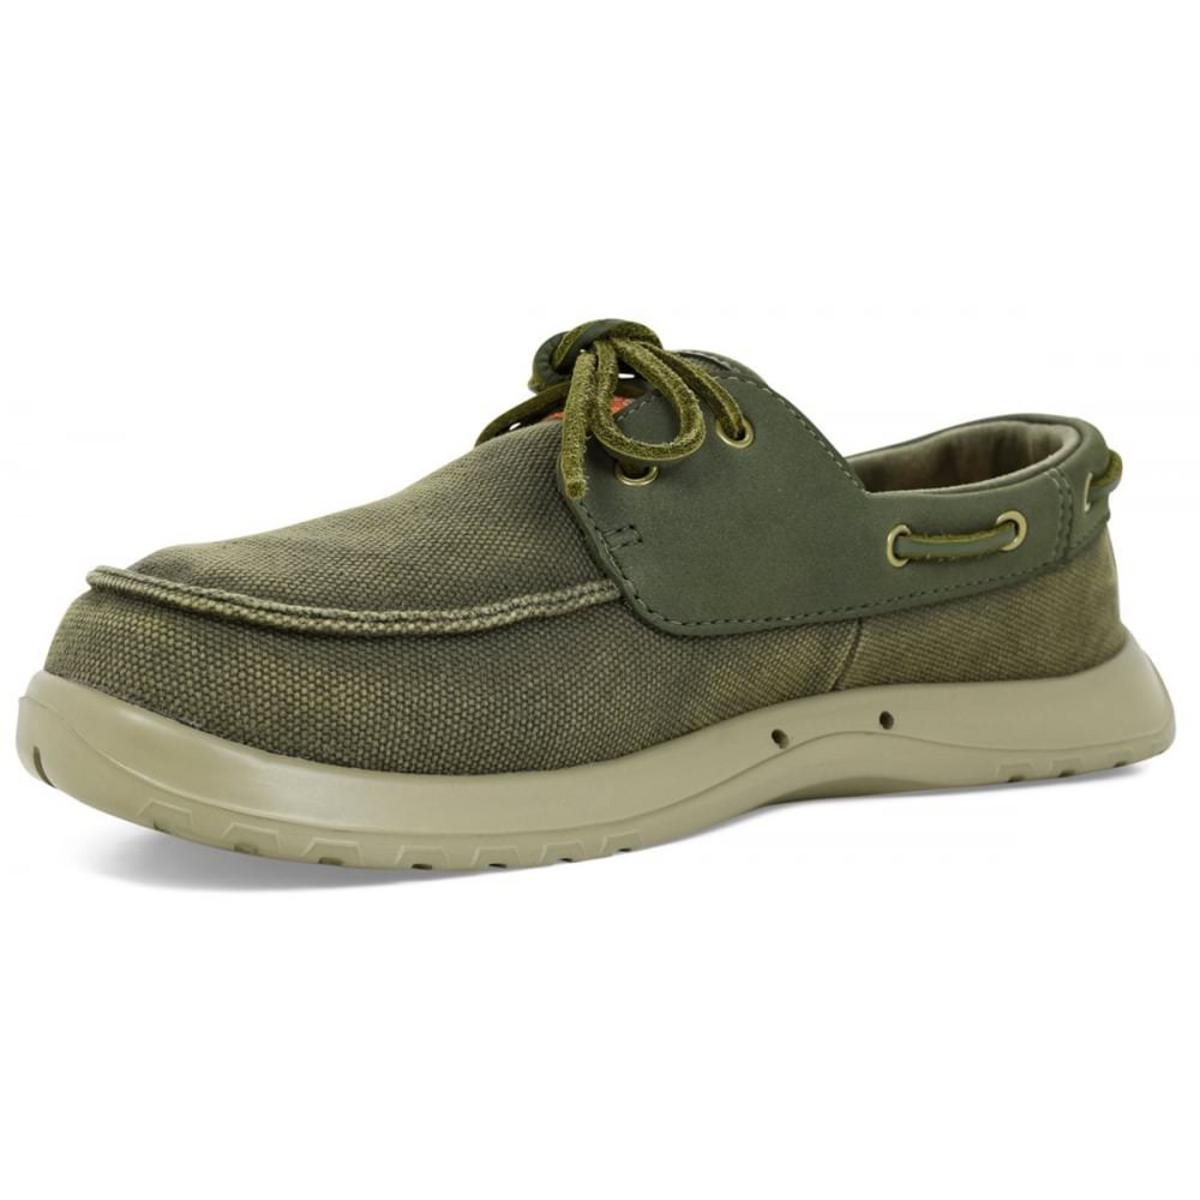 SoftScience The Cruise Canvas Men's Boating Shoes - Sage, Size 7 by SoftScience